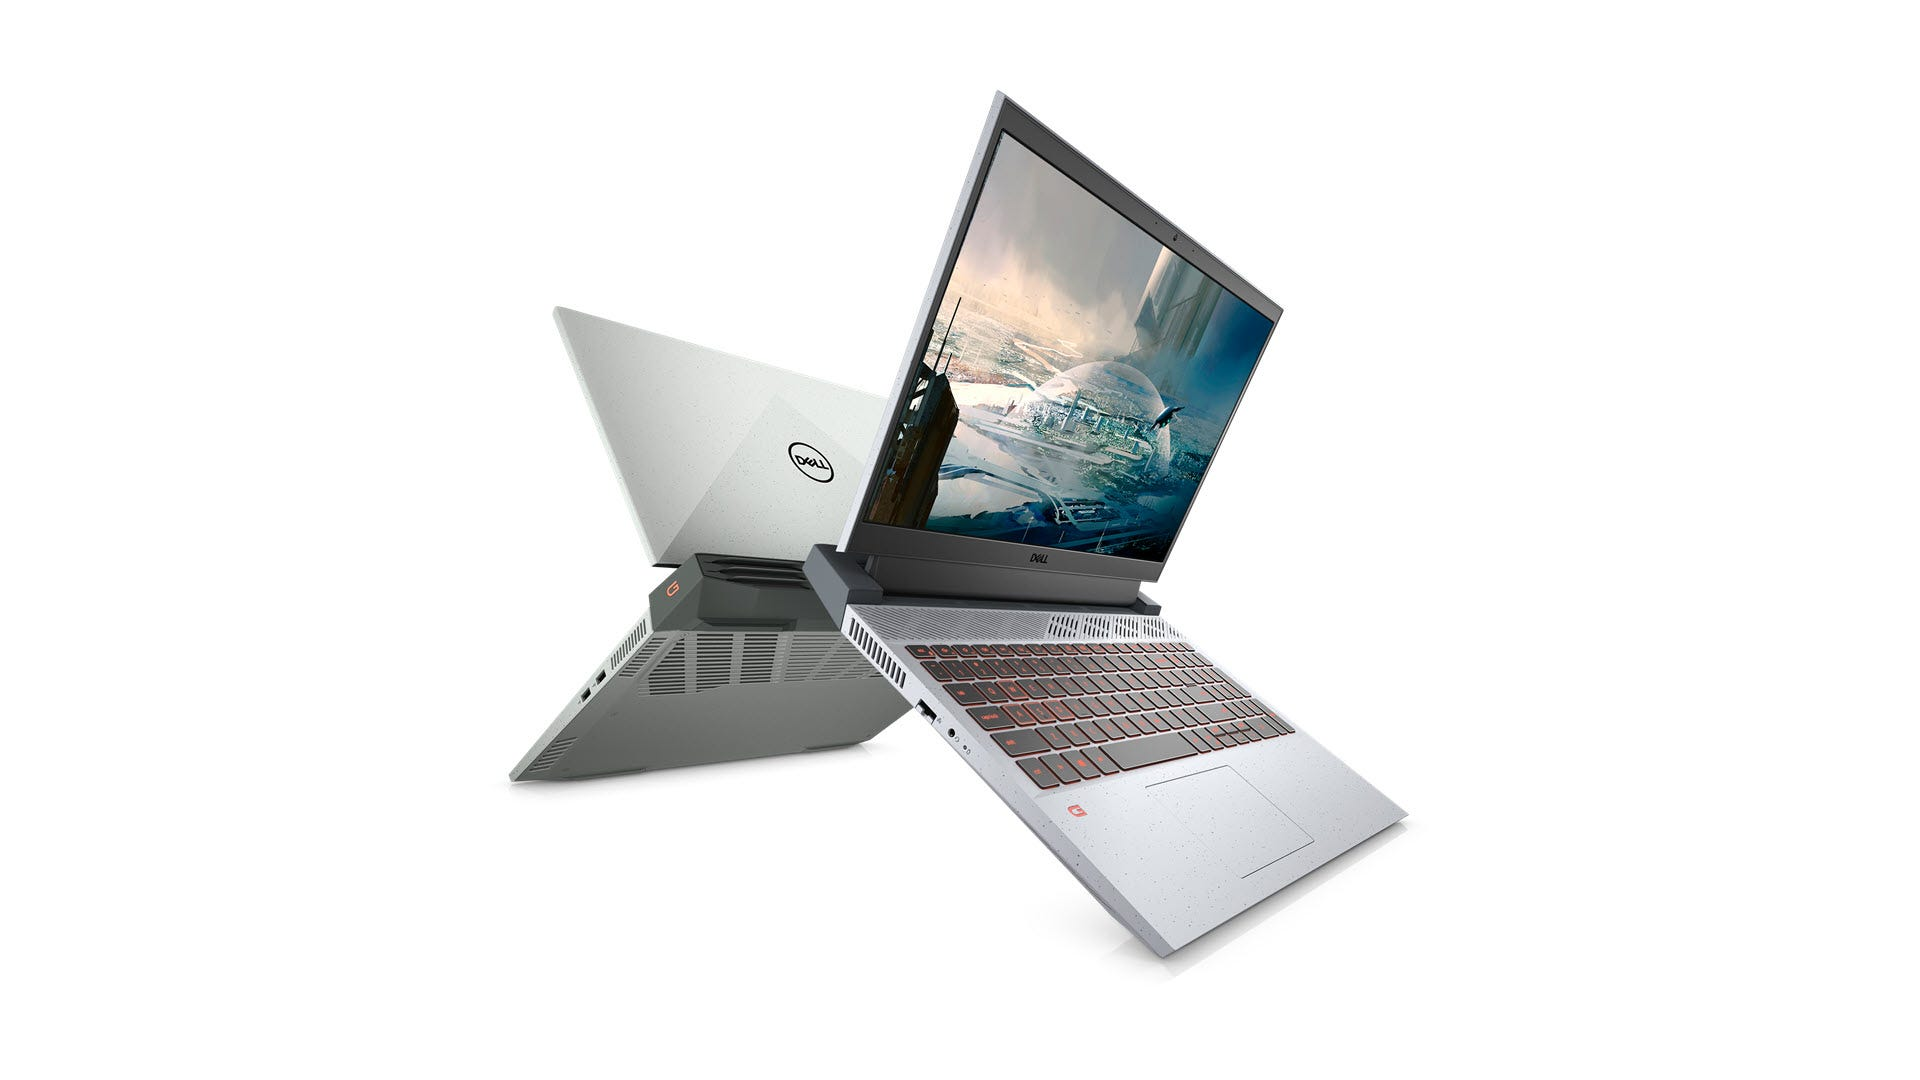 A Dell G15 Laptop seen from front and back.